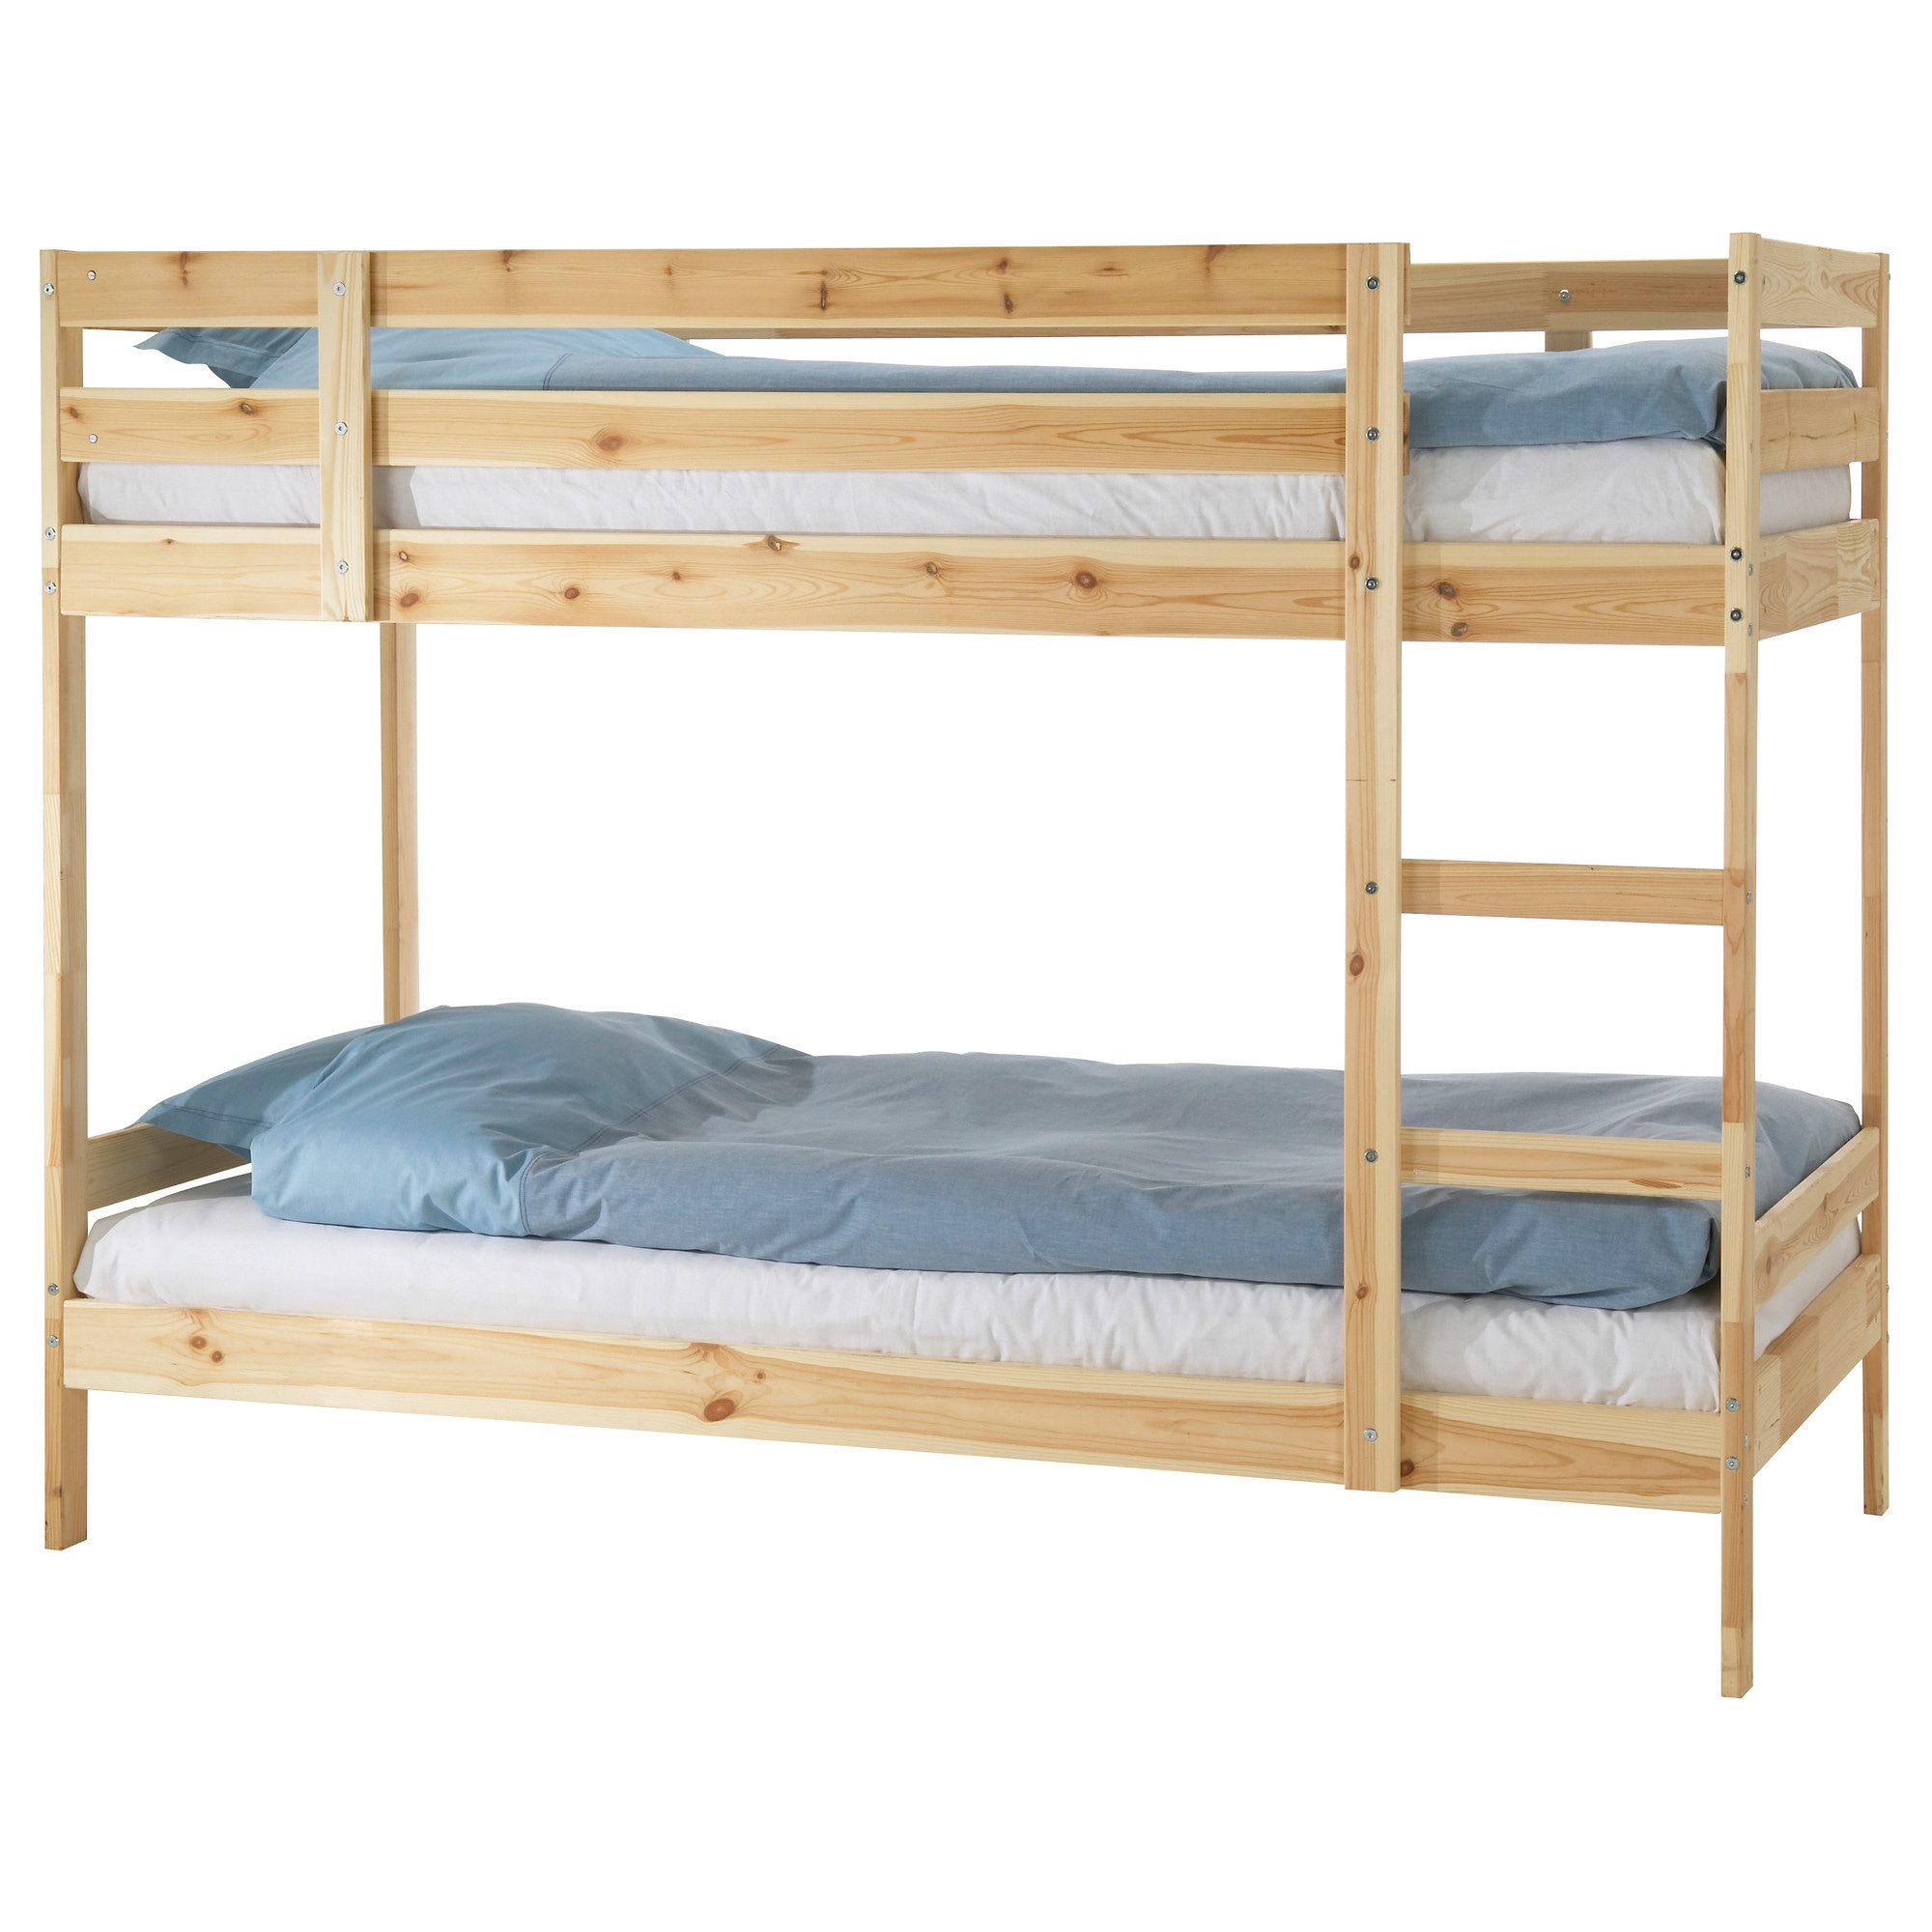 Bunk beds for kids ikea - Bunk Beds For Kids Ikea 35